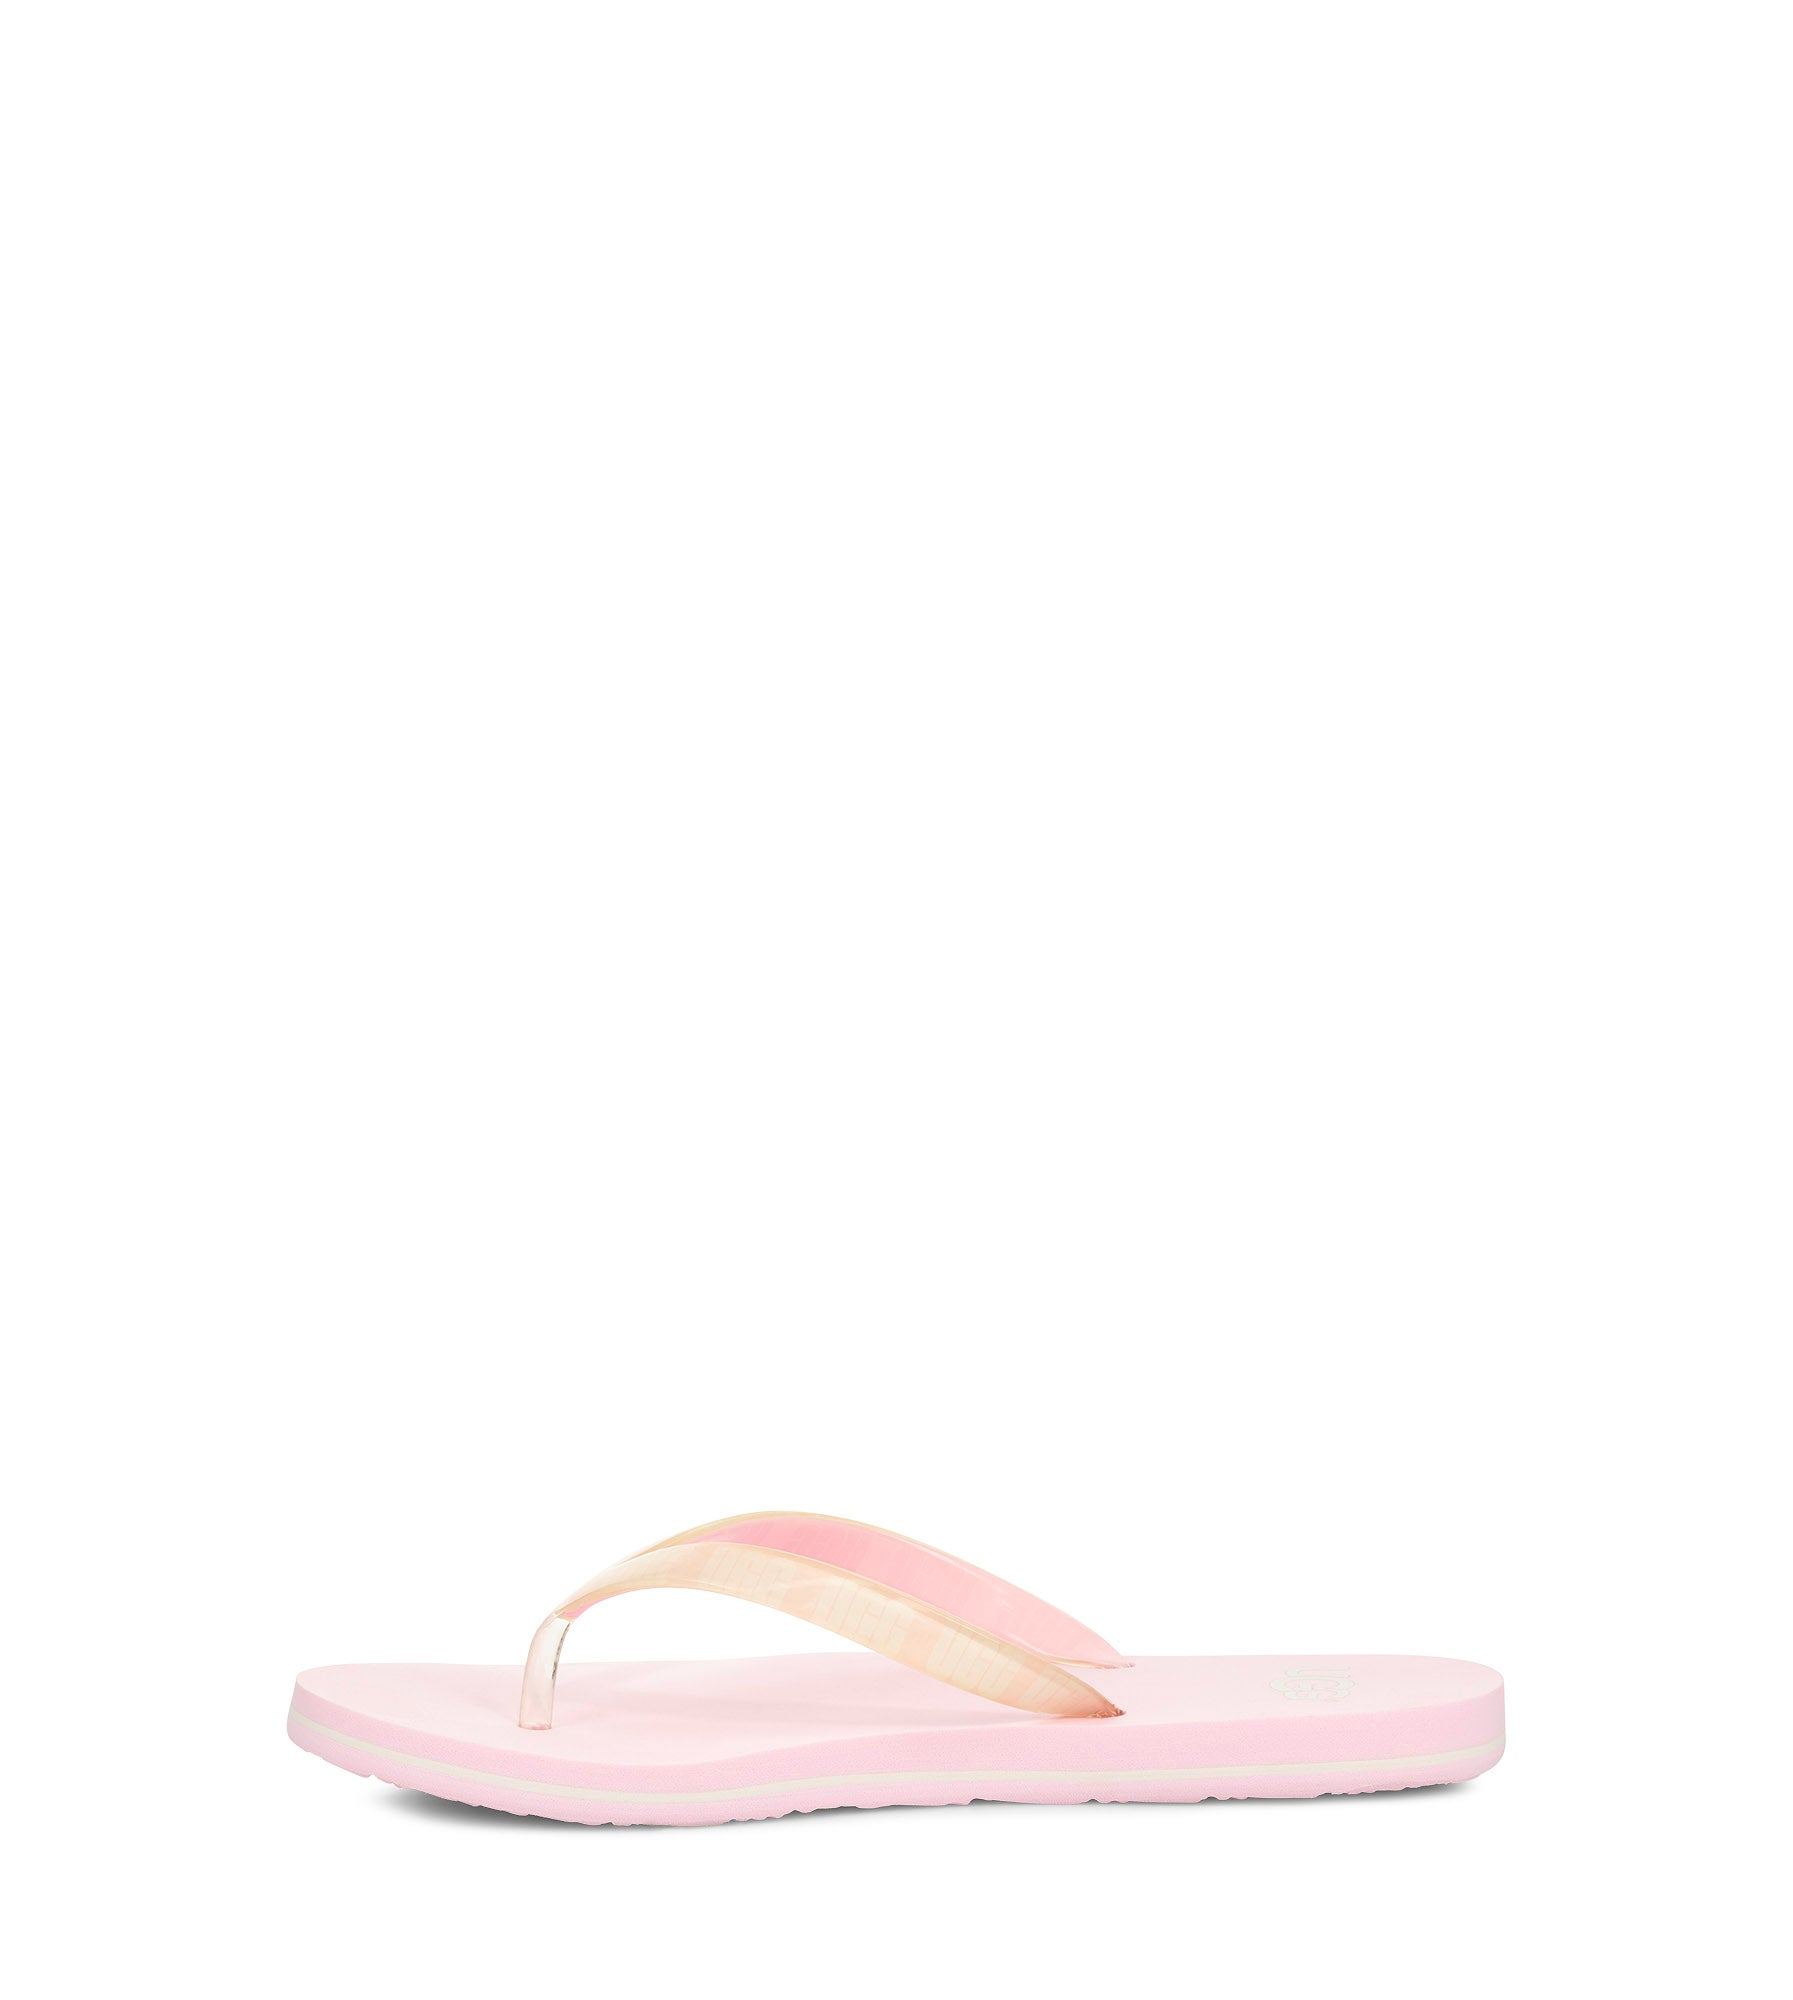 Lds Simi Graphic pink thong sandal